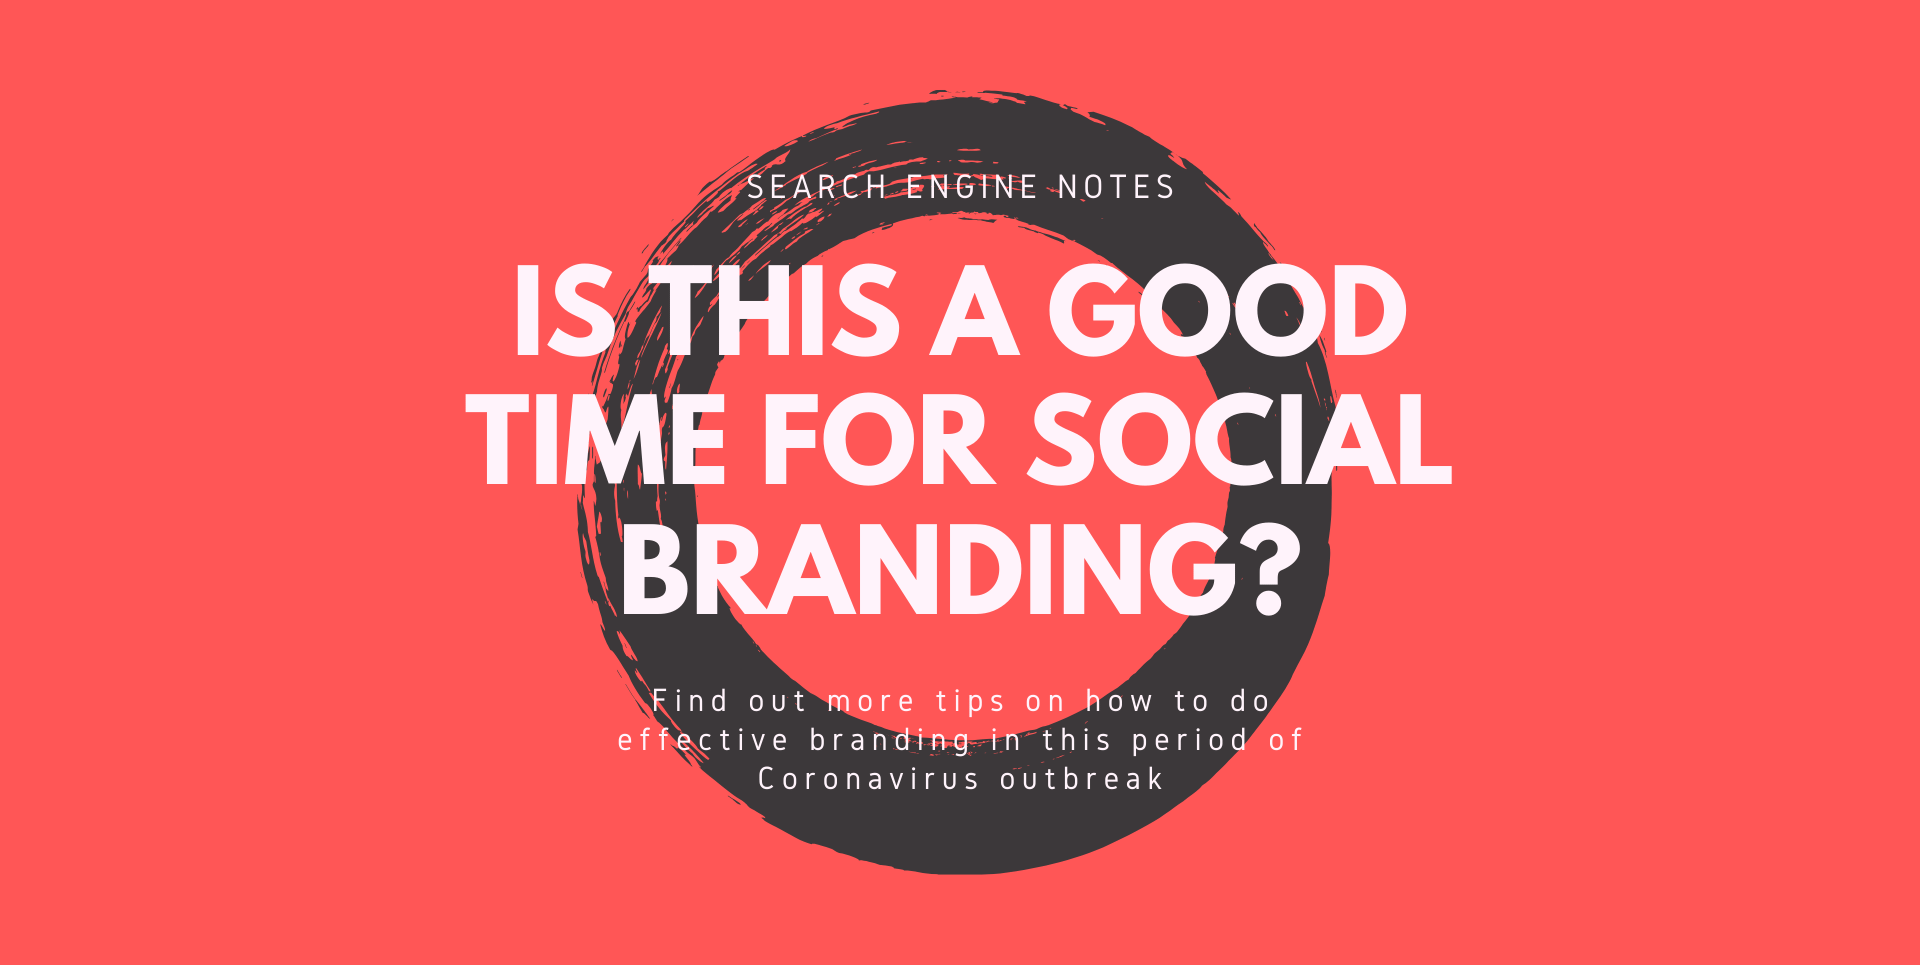 Is This A Good Time For Social Branding?